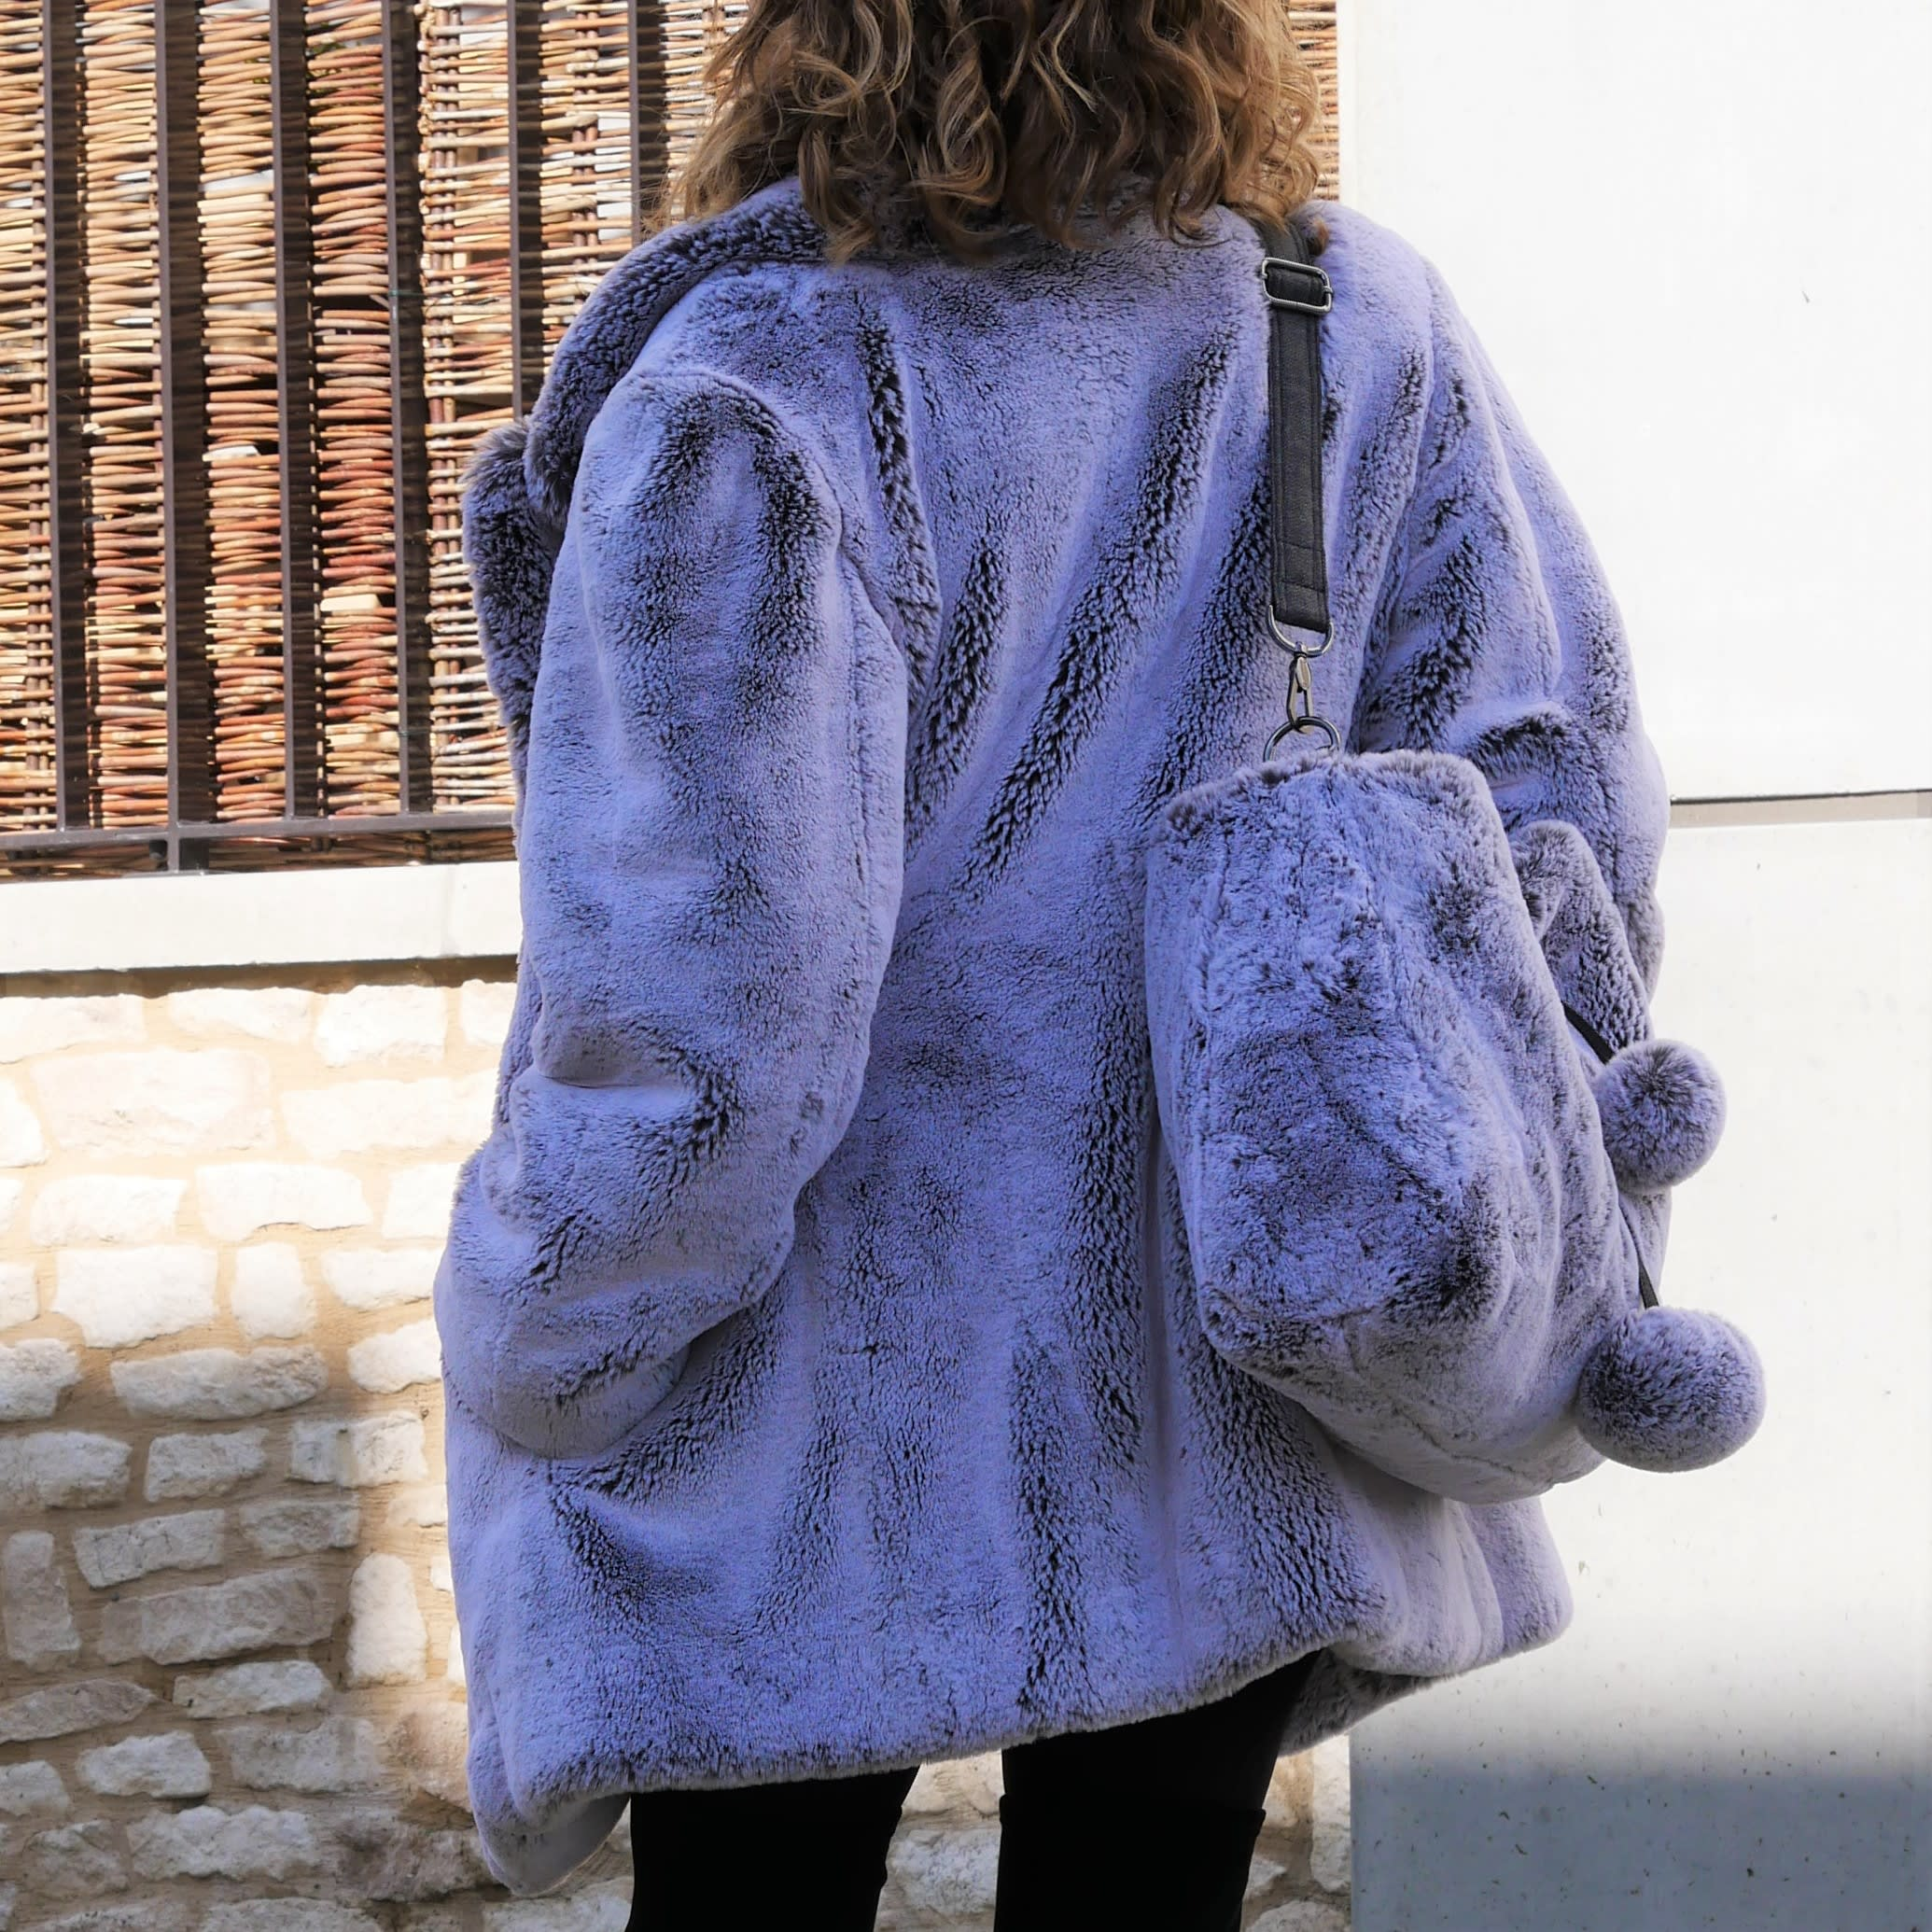 Fur jacket, faux fur loose fitting jacket. Grey and white luxury faux fur jacket. Winter coat, warm and washable.